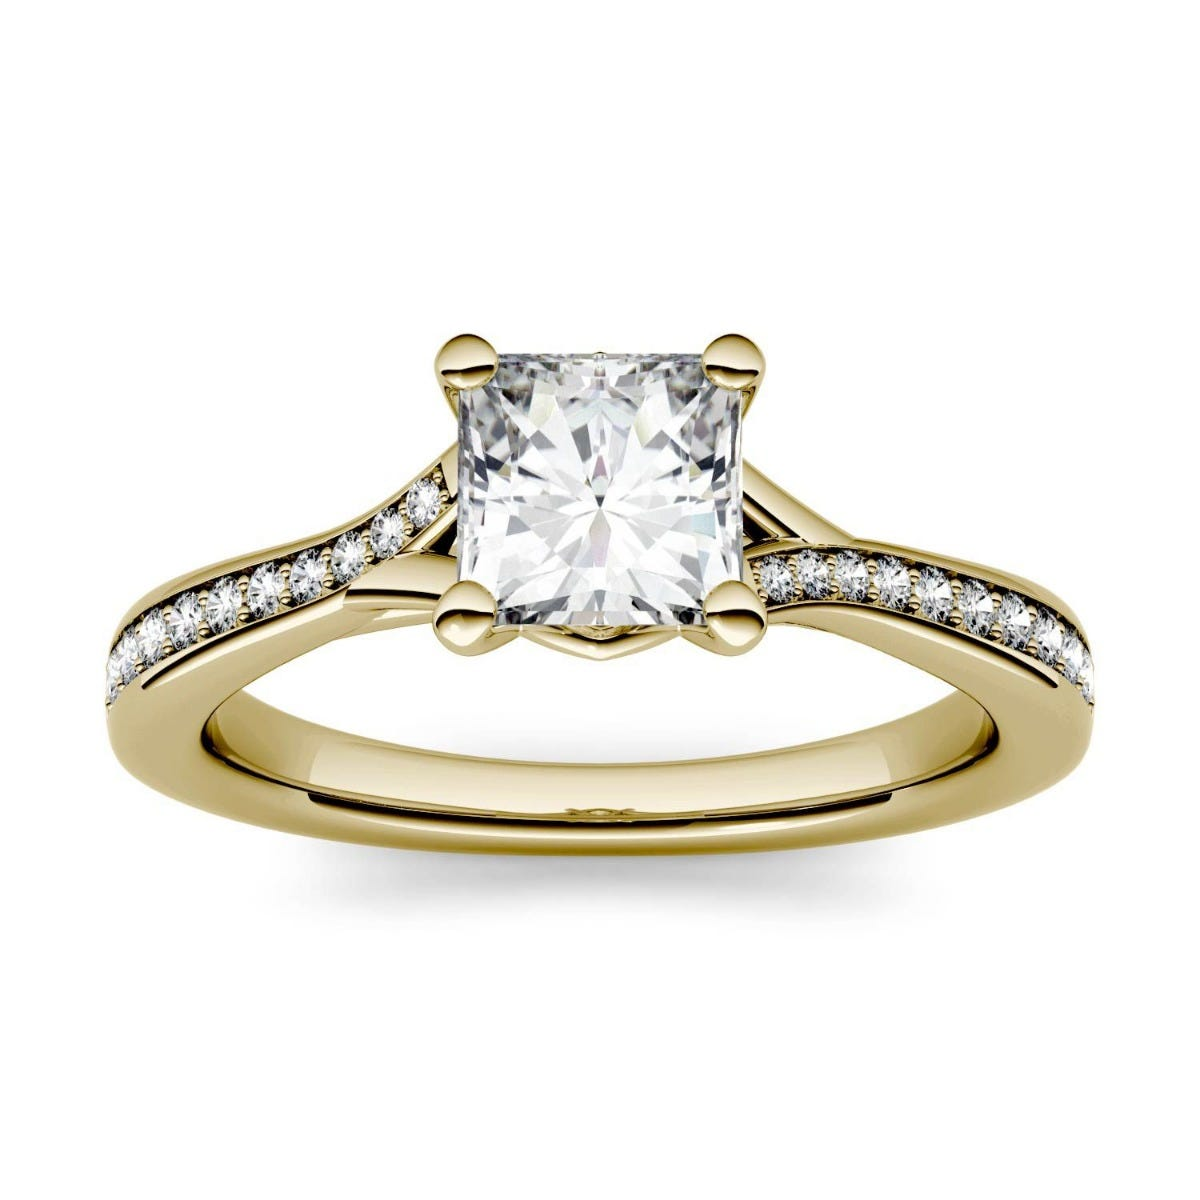 Forever One Princess Colorless Moissanite Solitaire with Side Accents Engagement Ring in 14K Yellow Gold